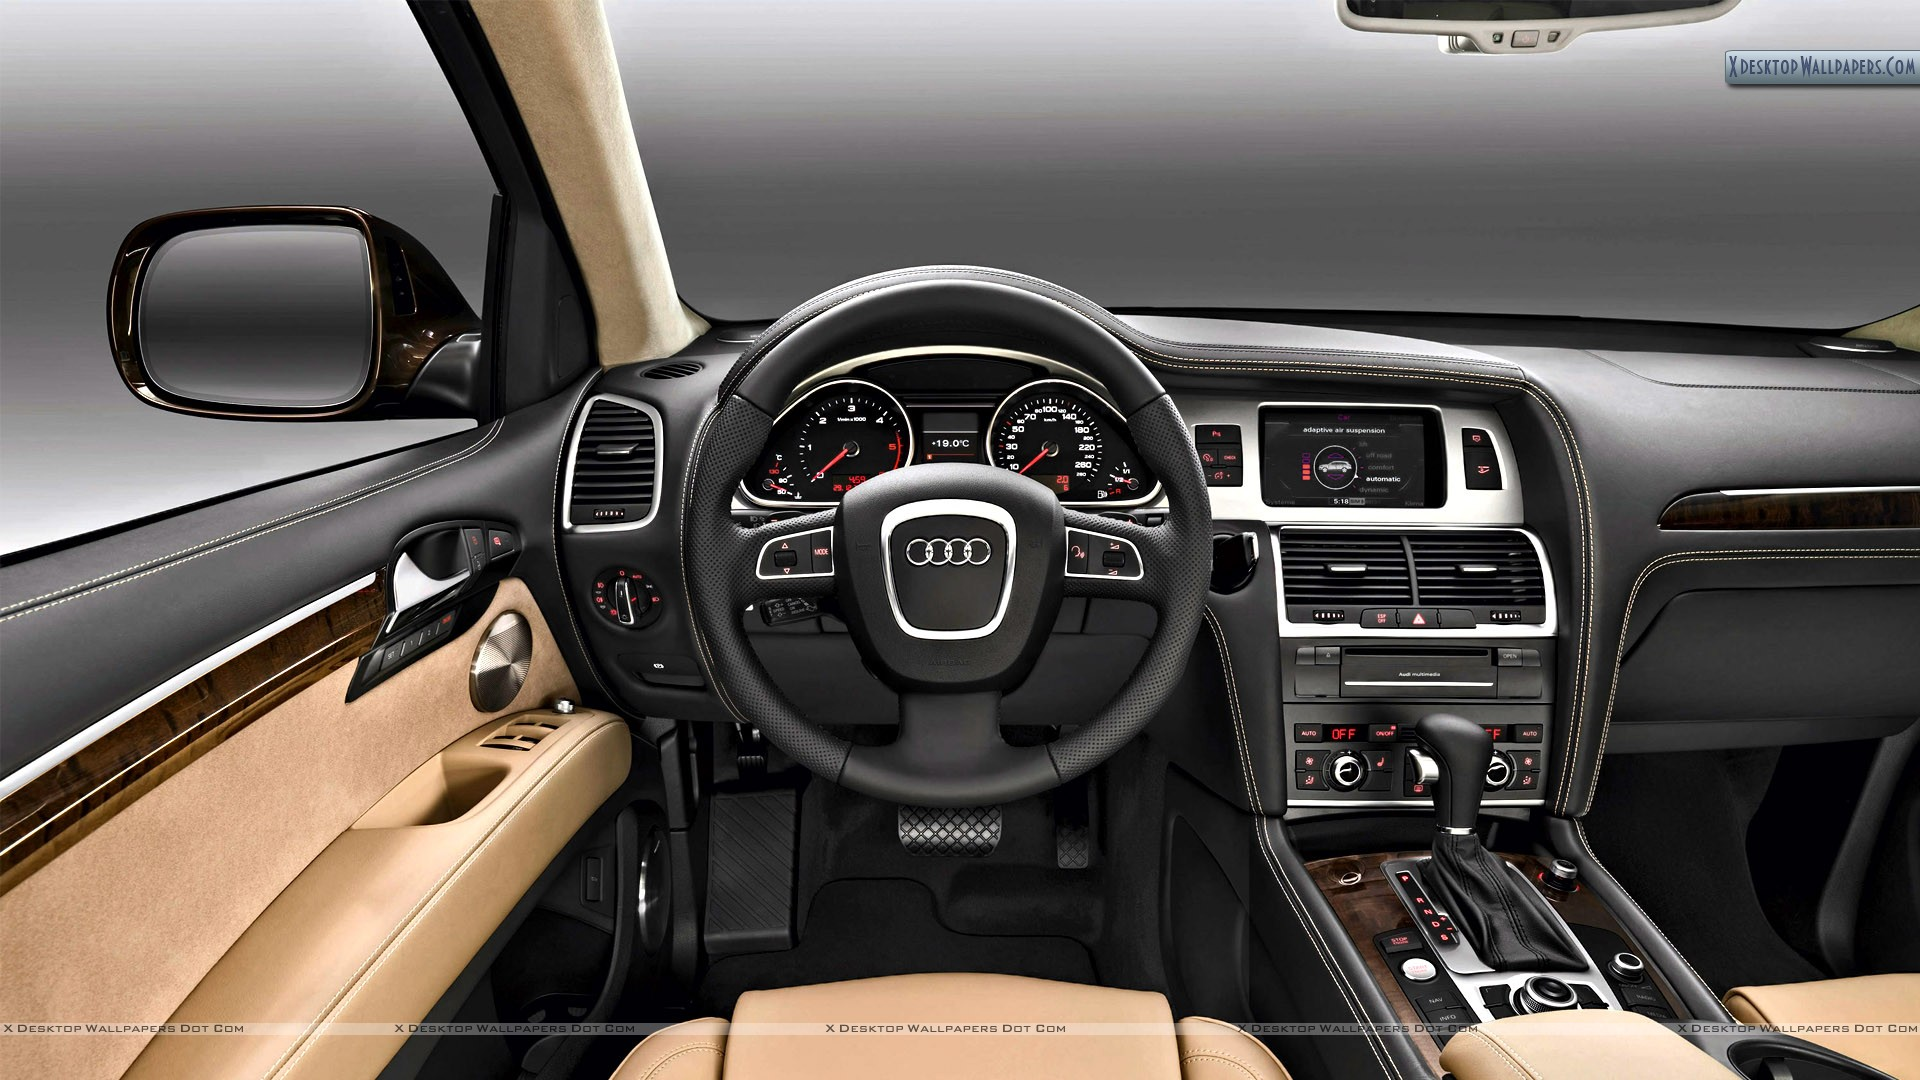 2010 audi q7 30 tdi interior wallpaper. Black Bedroom Furniture Sets. Home Design Ideas